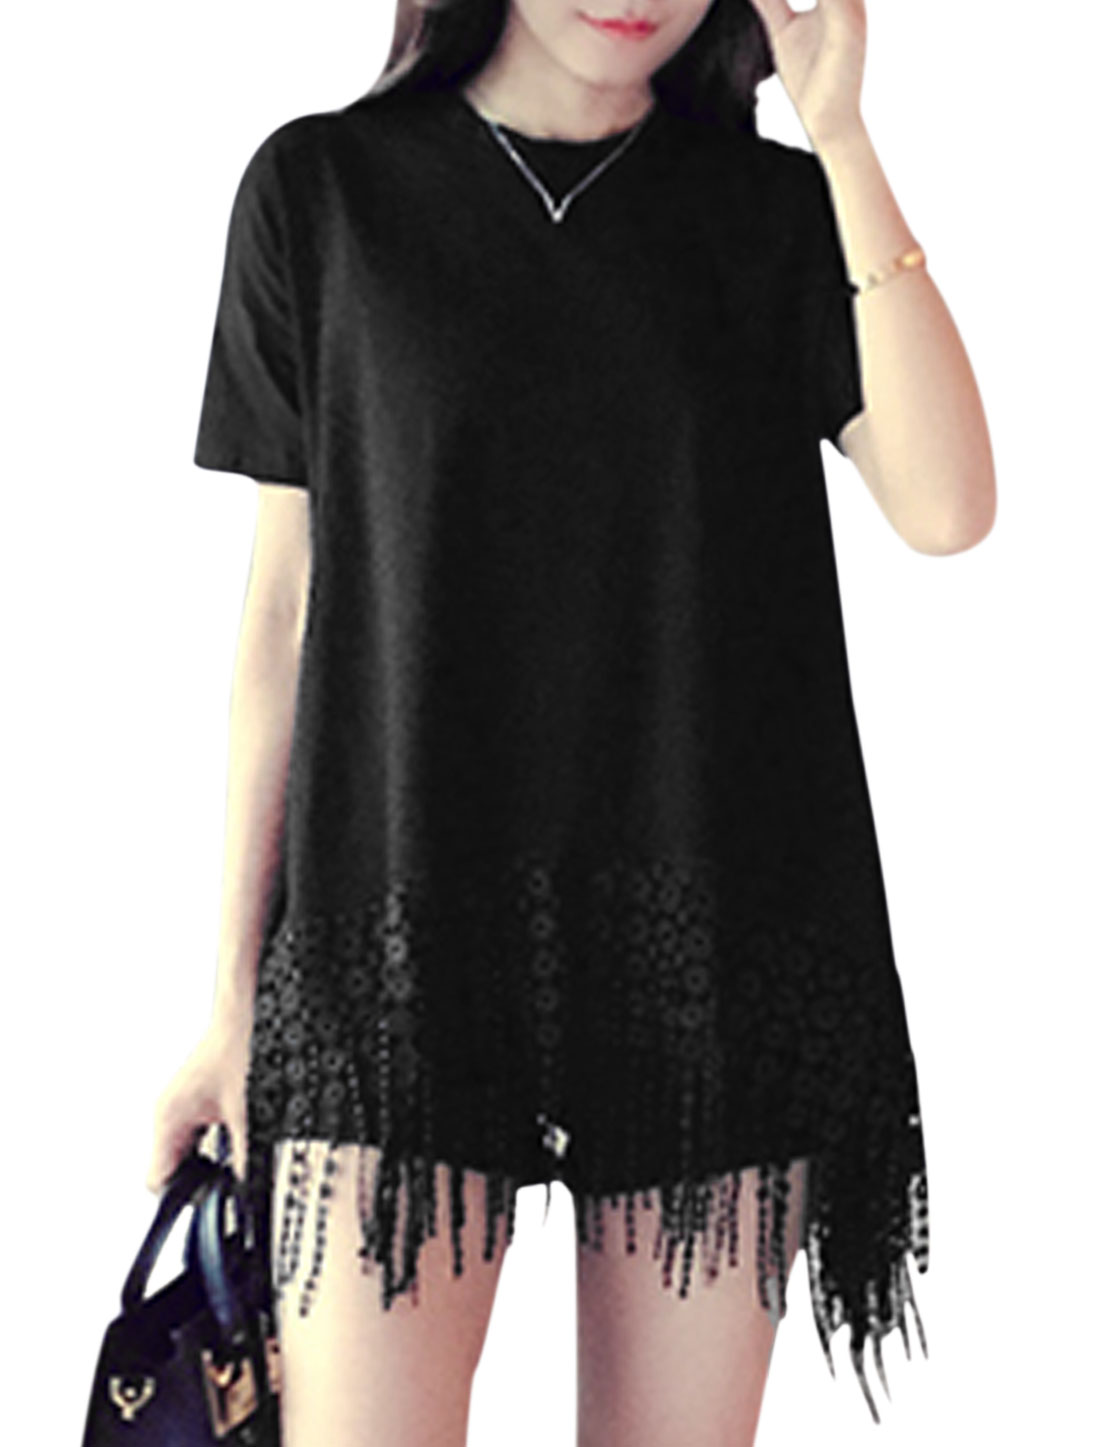 Ladies Short Sleeves Tassels Hem Panel Design Casual Tops Black XS